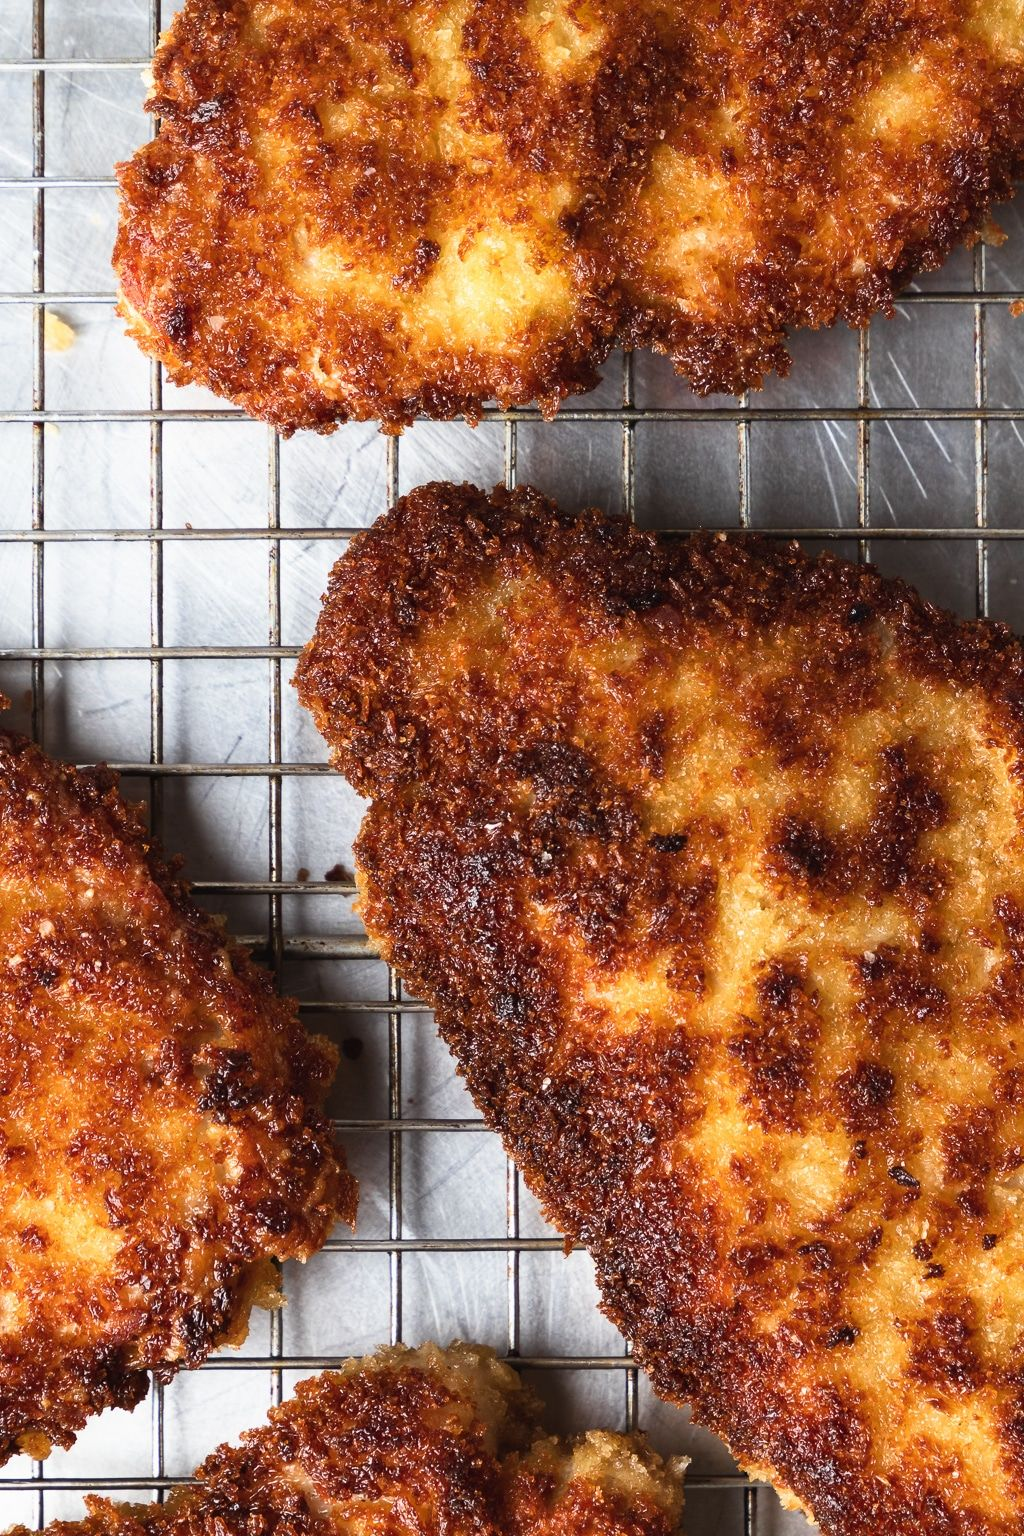 Crispy Pork with Tomato Cherry Pepper Relish Crispy pork cutlets with tomato cherry pepper relish is a super easy but incredibly impressive weeknight meal. Grab the recipe for this crunchy, spicy, satisfying dinner right now!